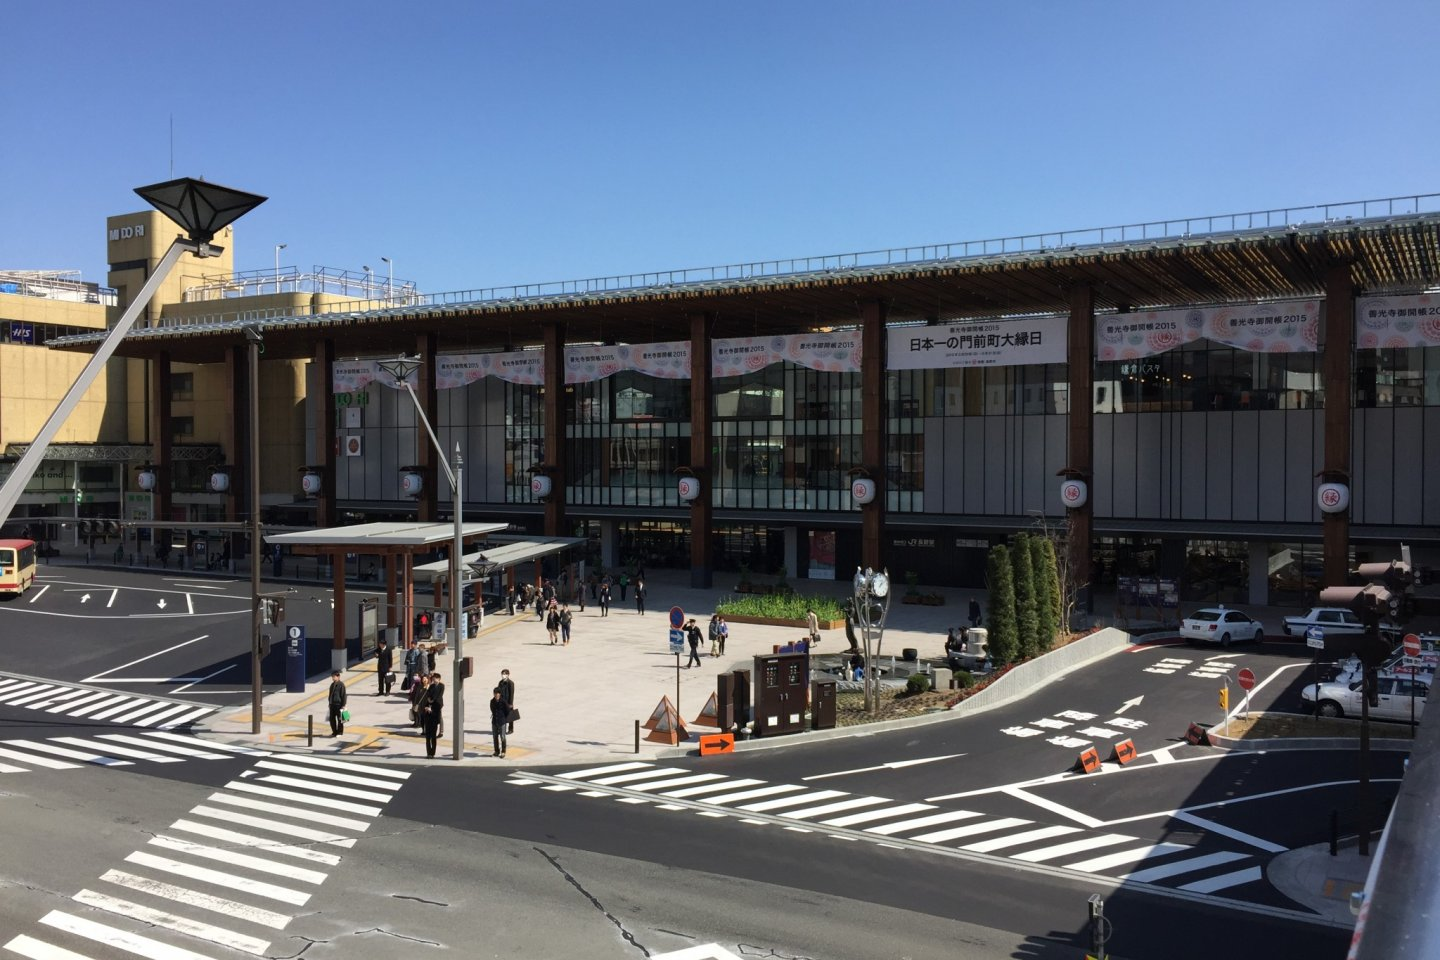 The new west entrance, known as the Zenkoji Entrance.